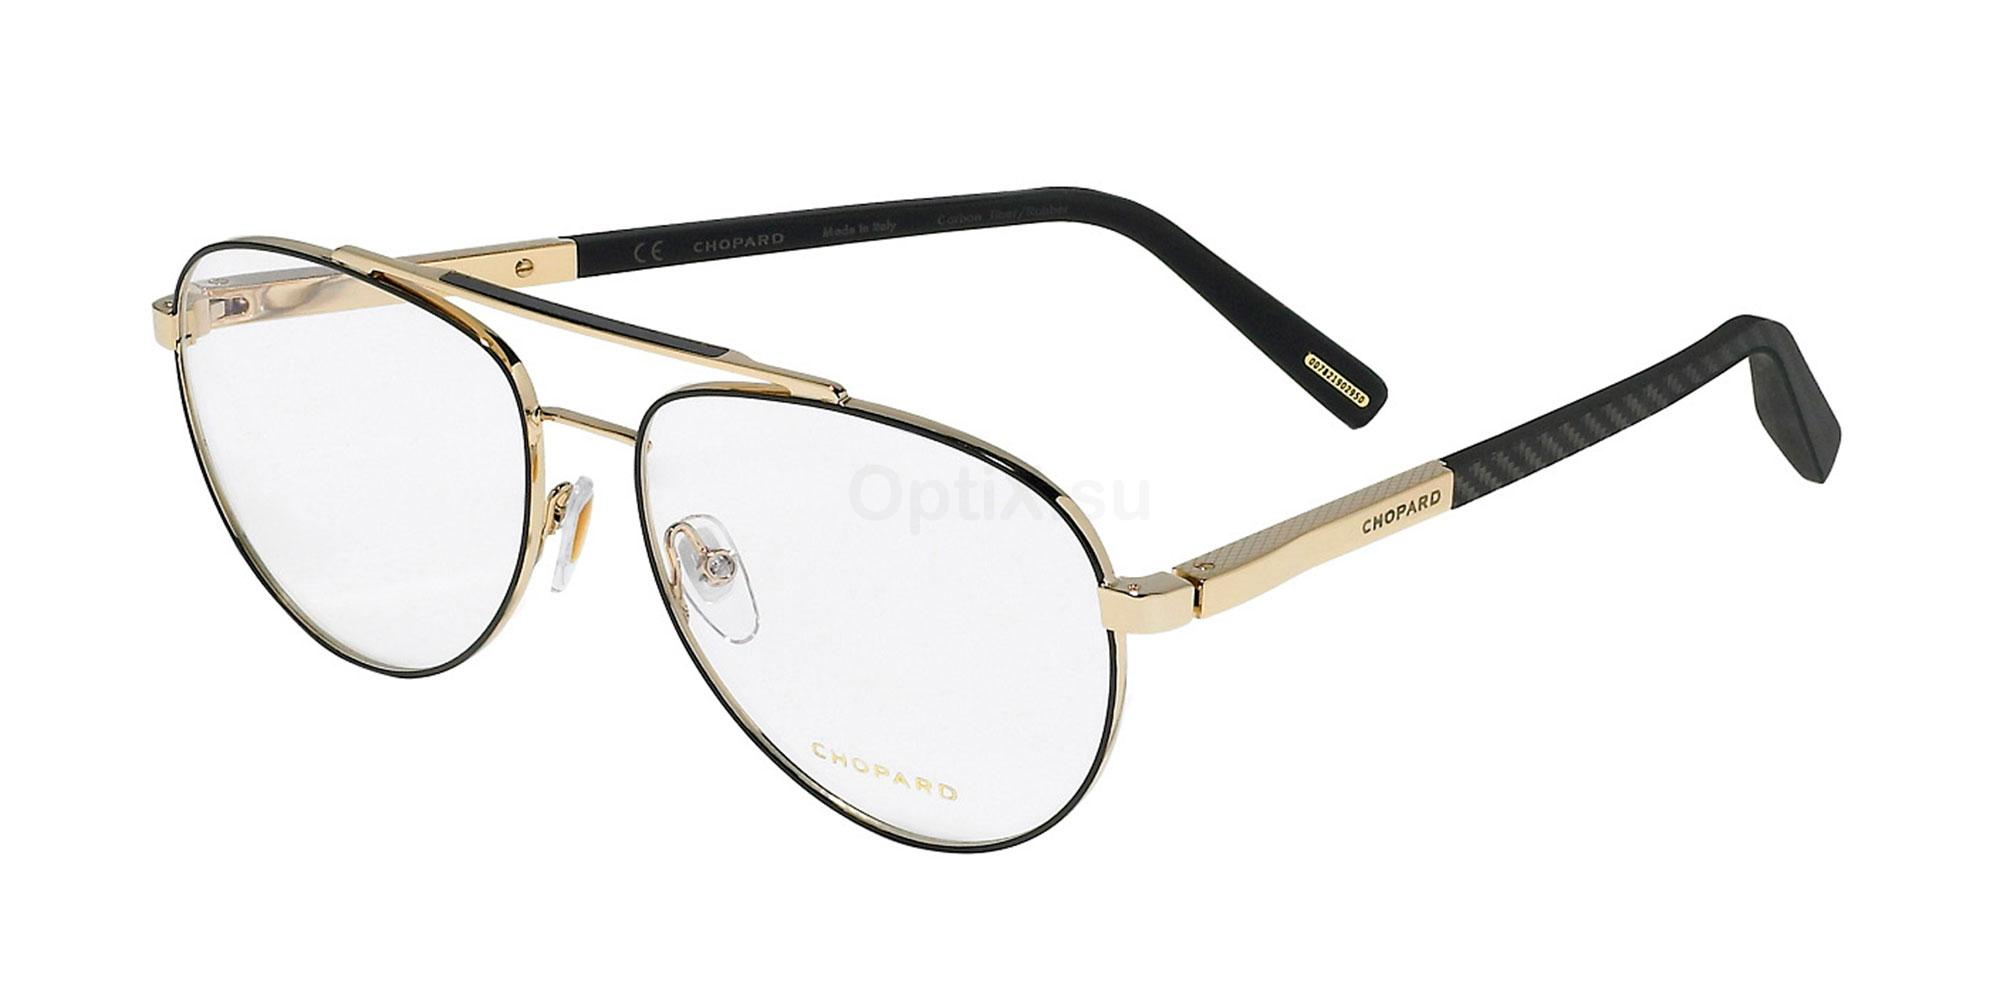 0301 VCHD21 Glasses, Chopard